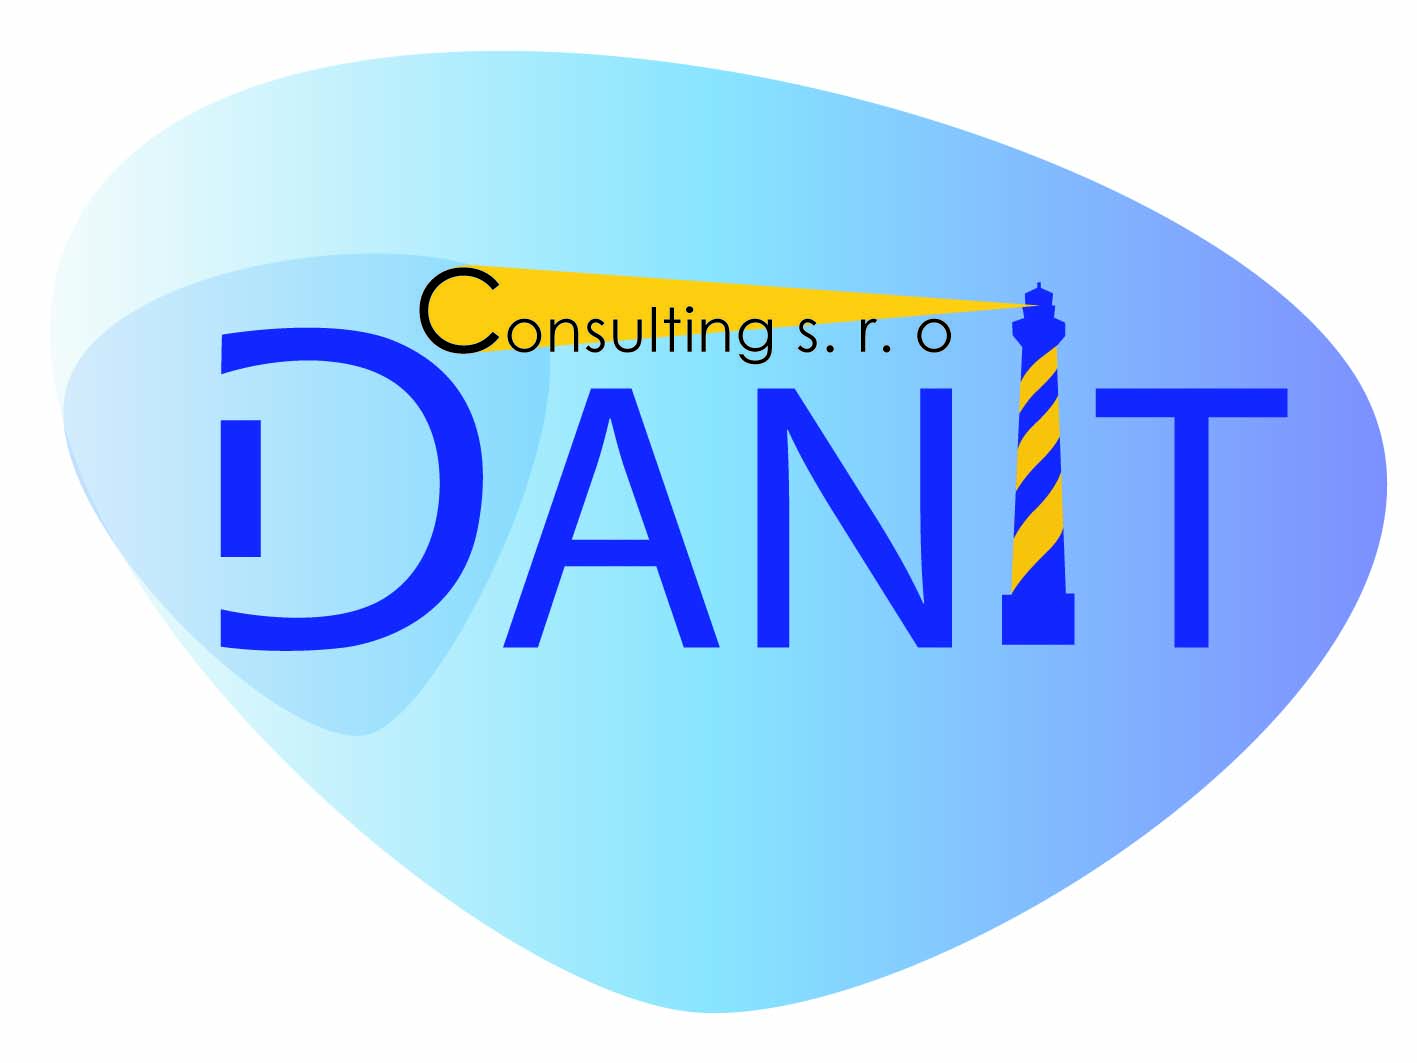 Danit Consulting s.r.o.